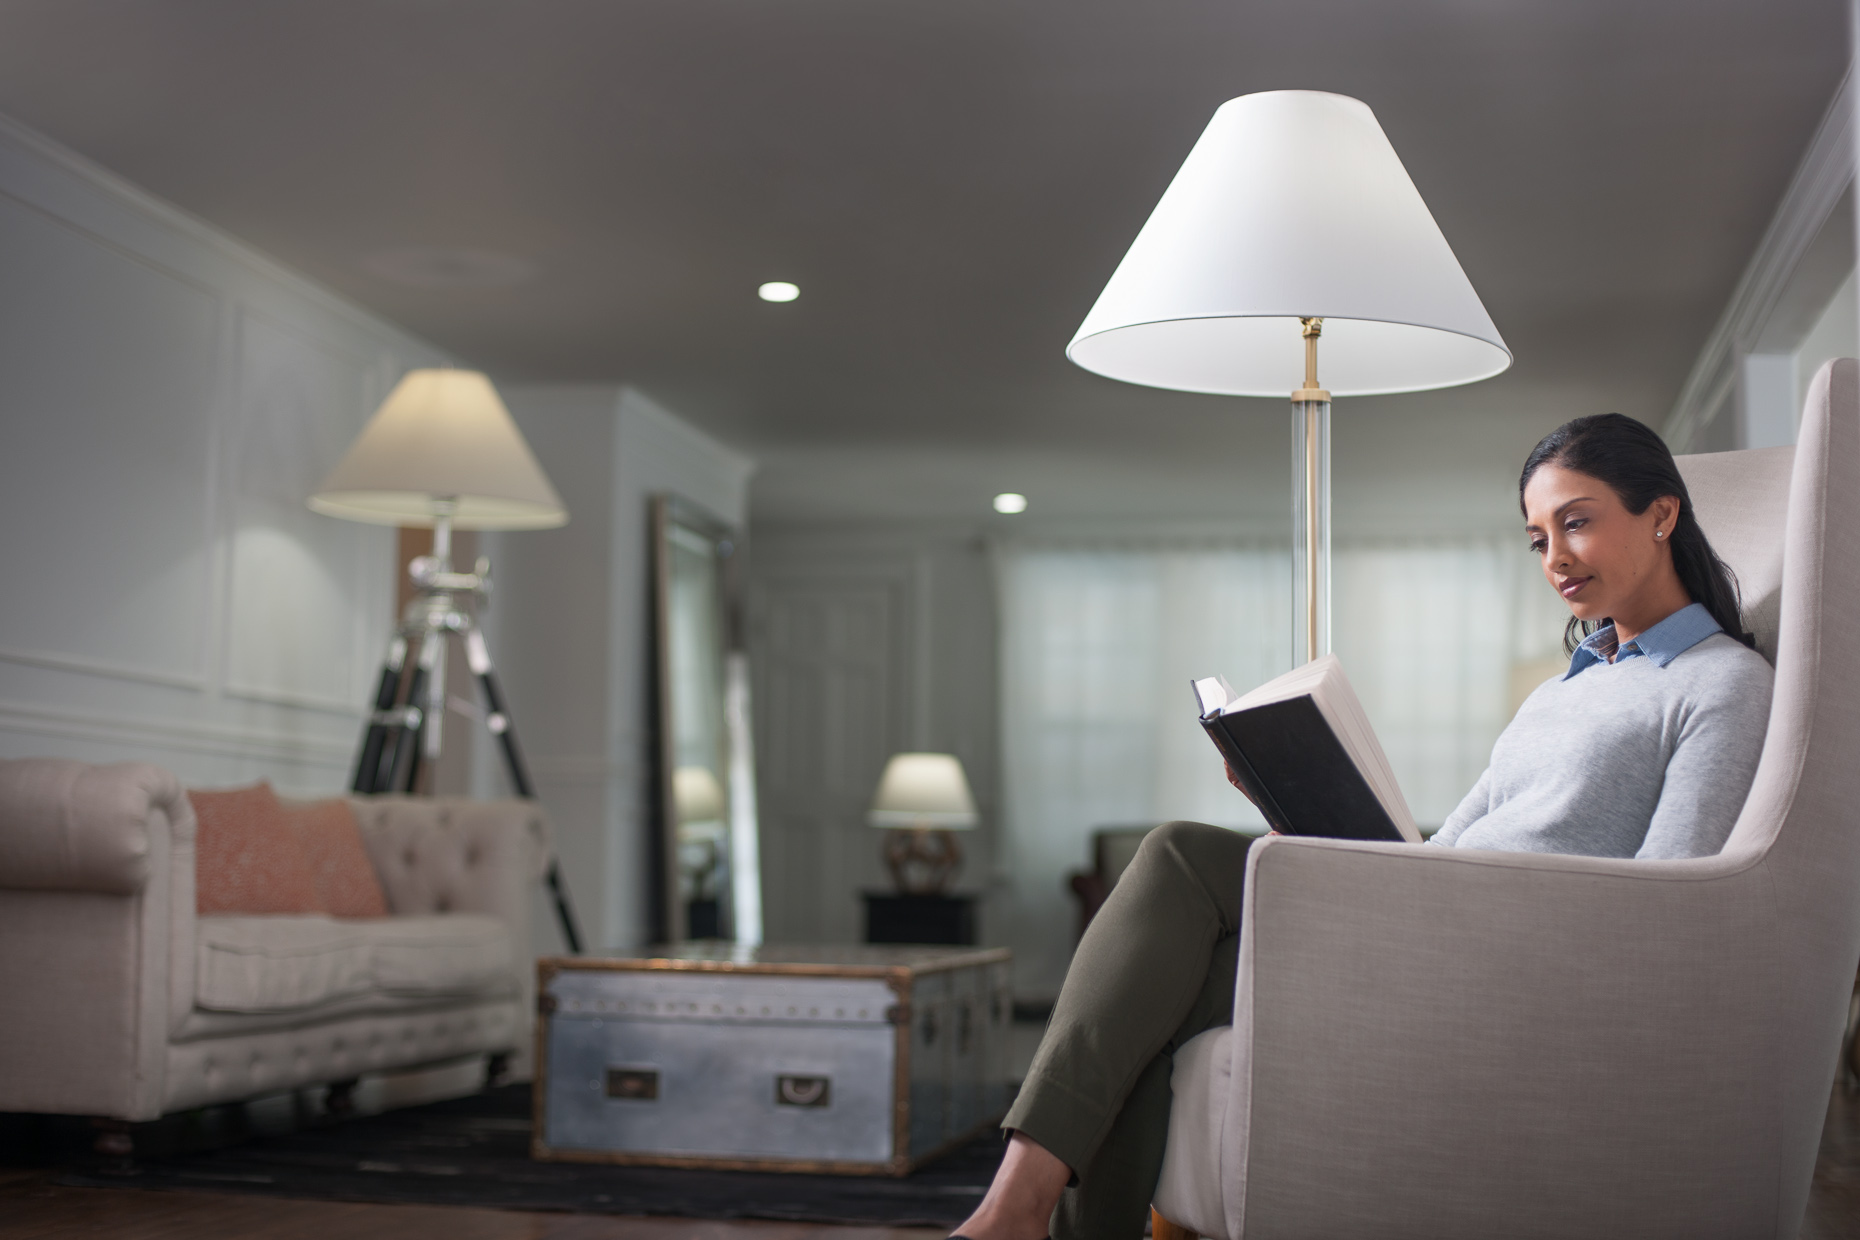 commercial-lifestyle-book-reading-philips